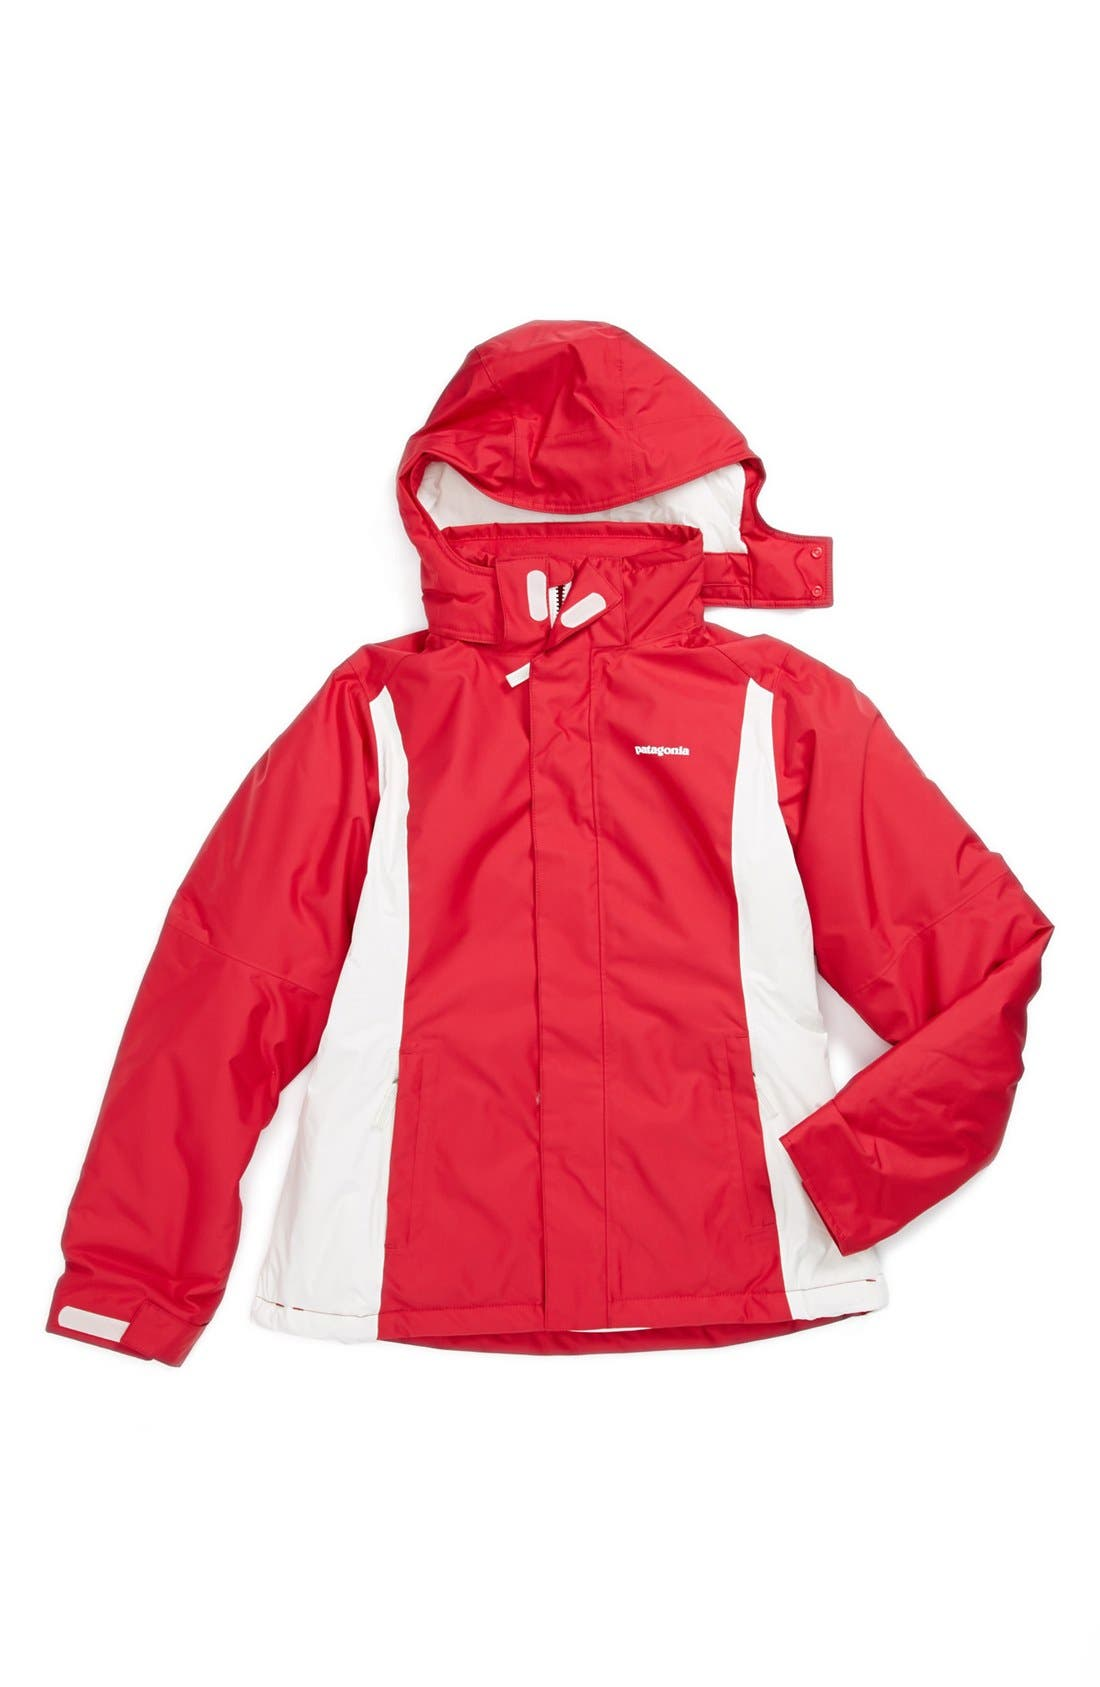 Main Image - Patagonia 'Snowbelle' Insulated Jacket (Little Girls & Big Girls)